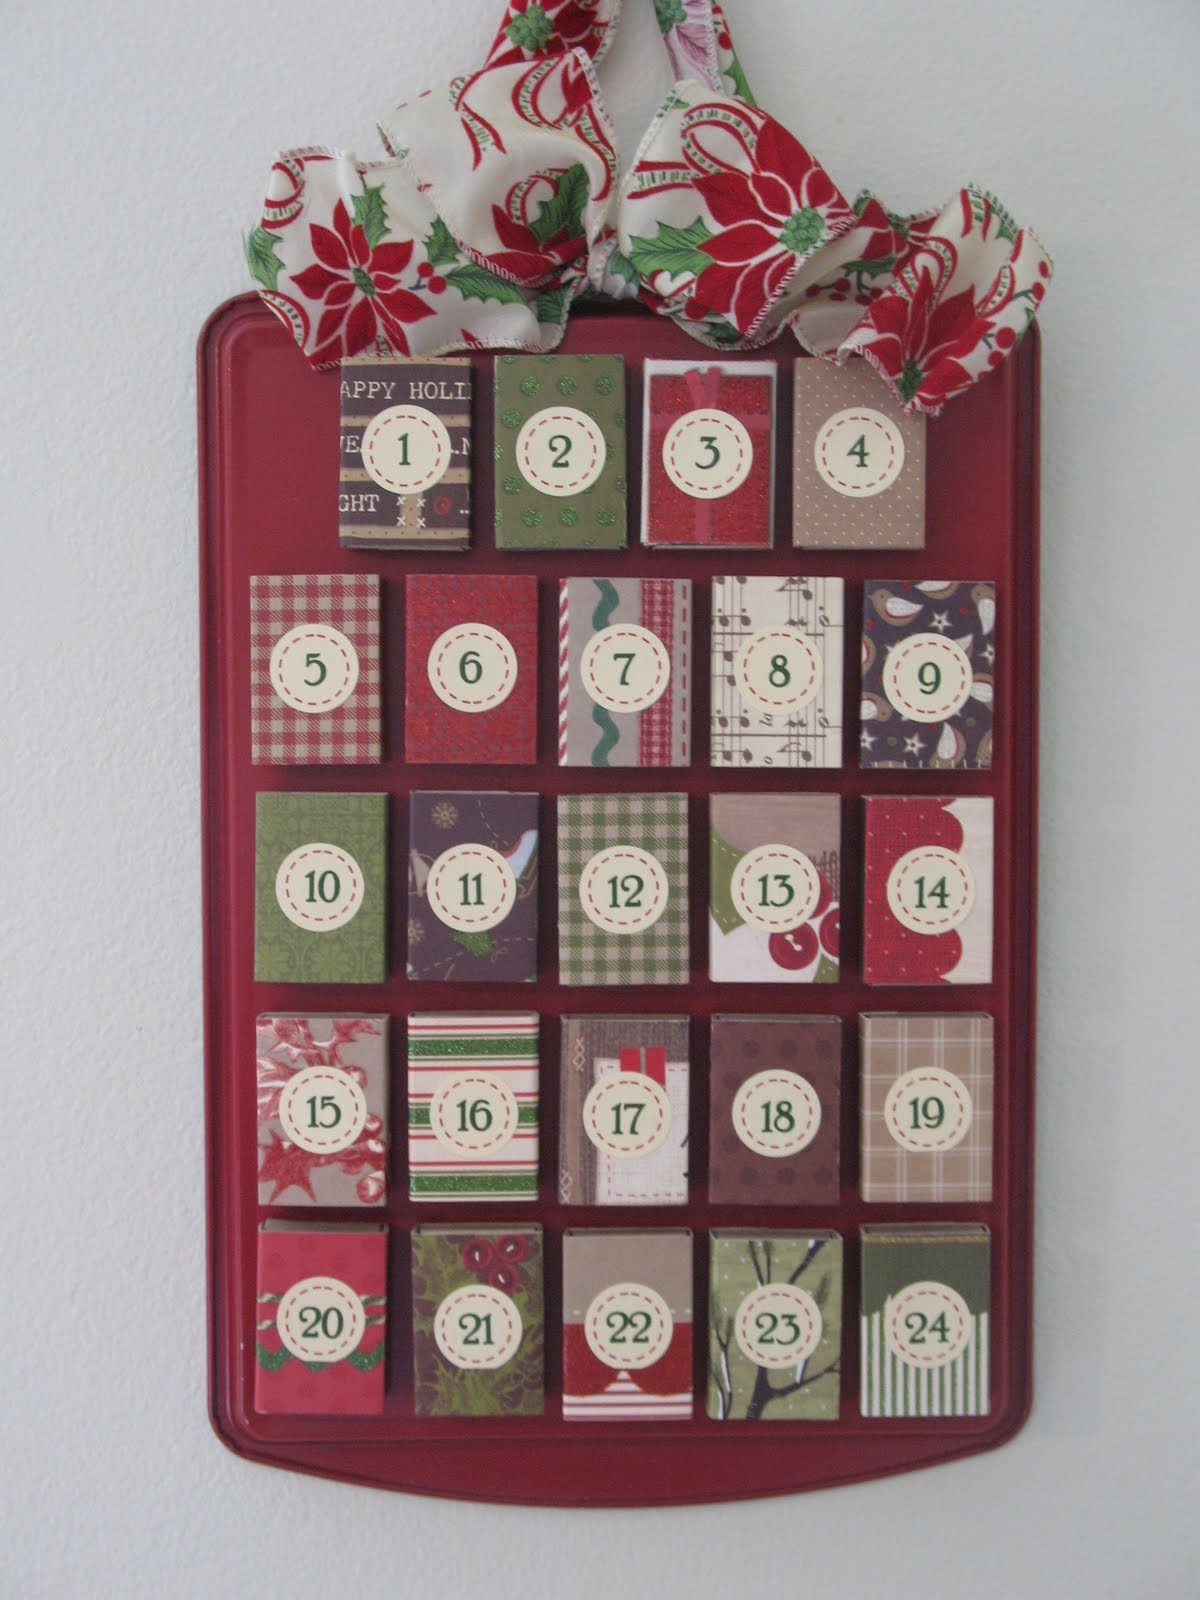 Diy Matchbox Advent Calendar : Matchbox advent calendar thecraftpatch